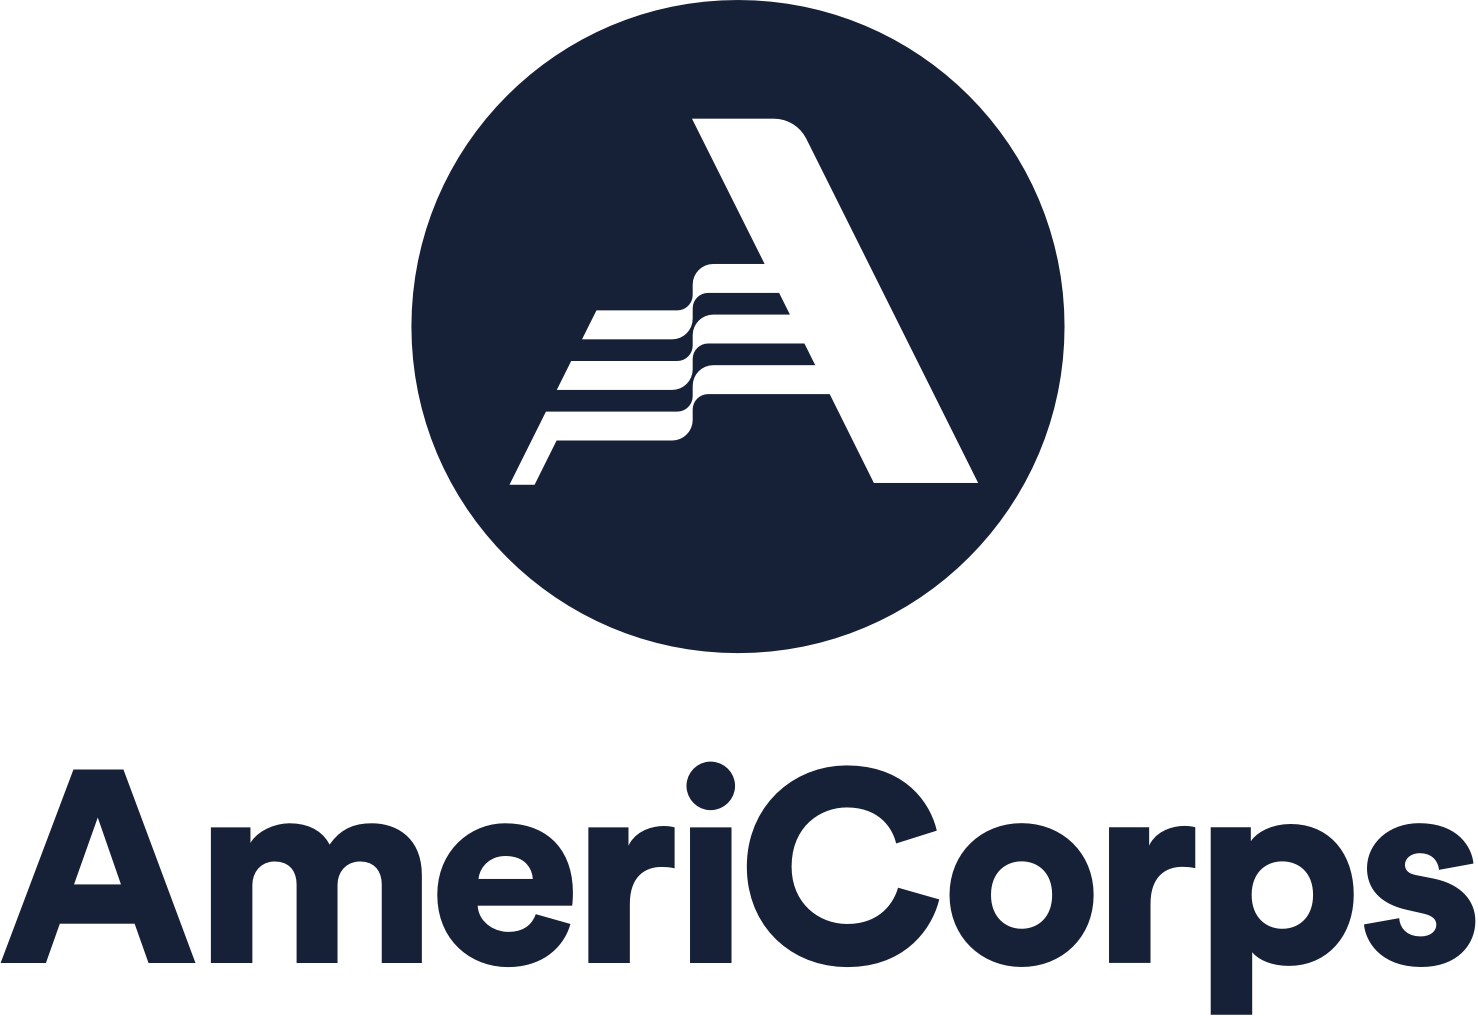 AmeriCorps logo. Reads: AmeriCorps. Image depicts white A logo inside blue sphere with words AmeriCorps below.